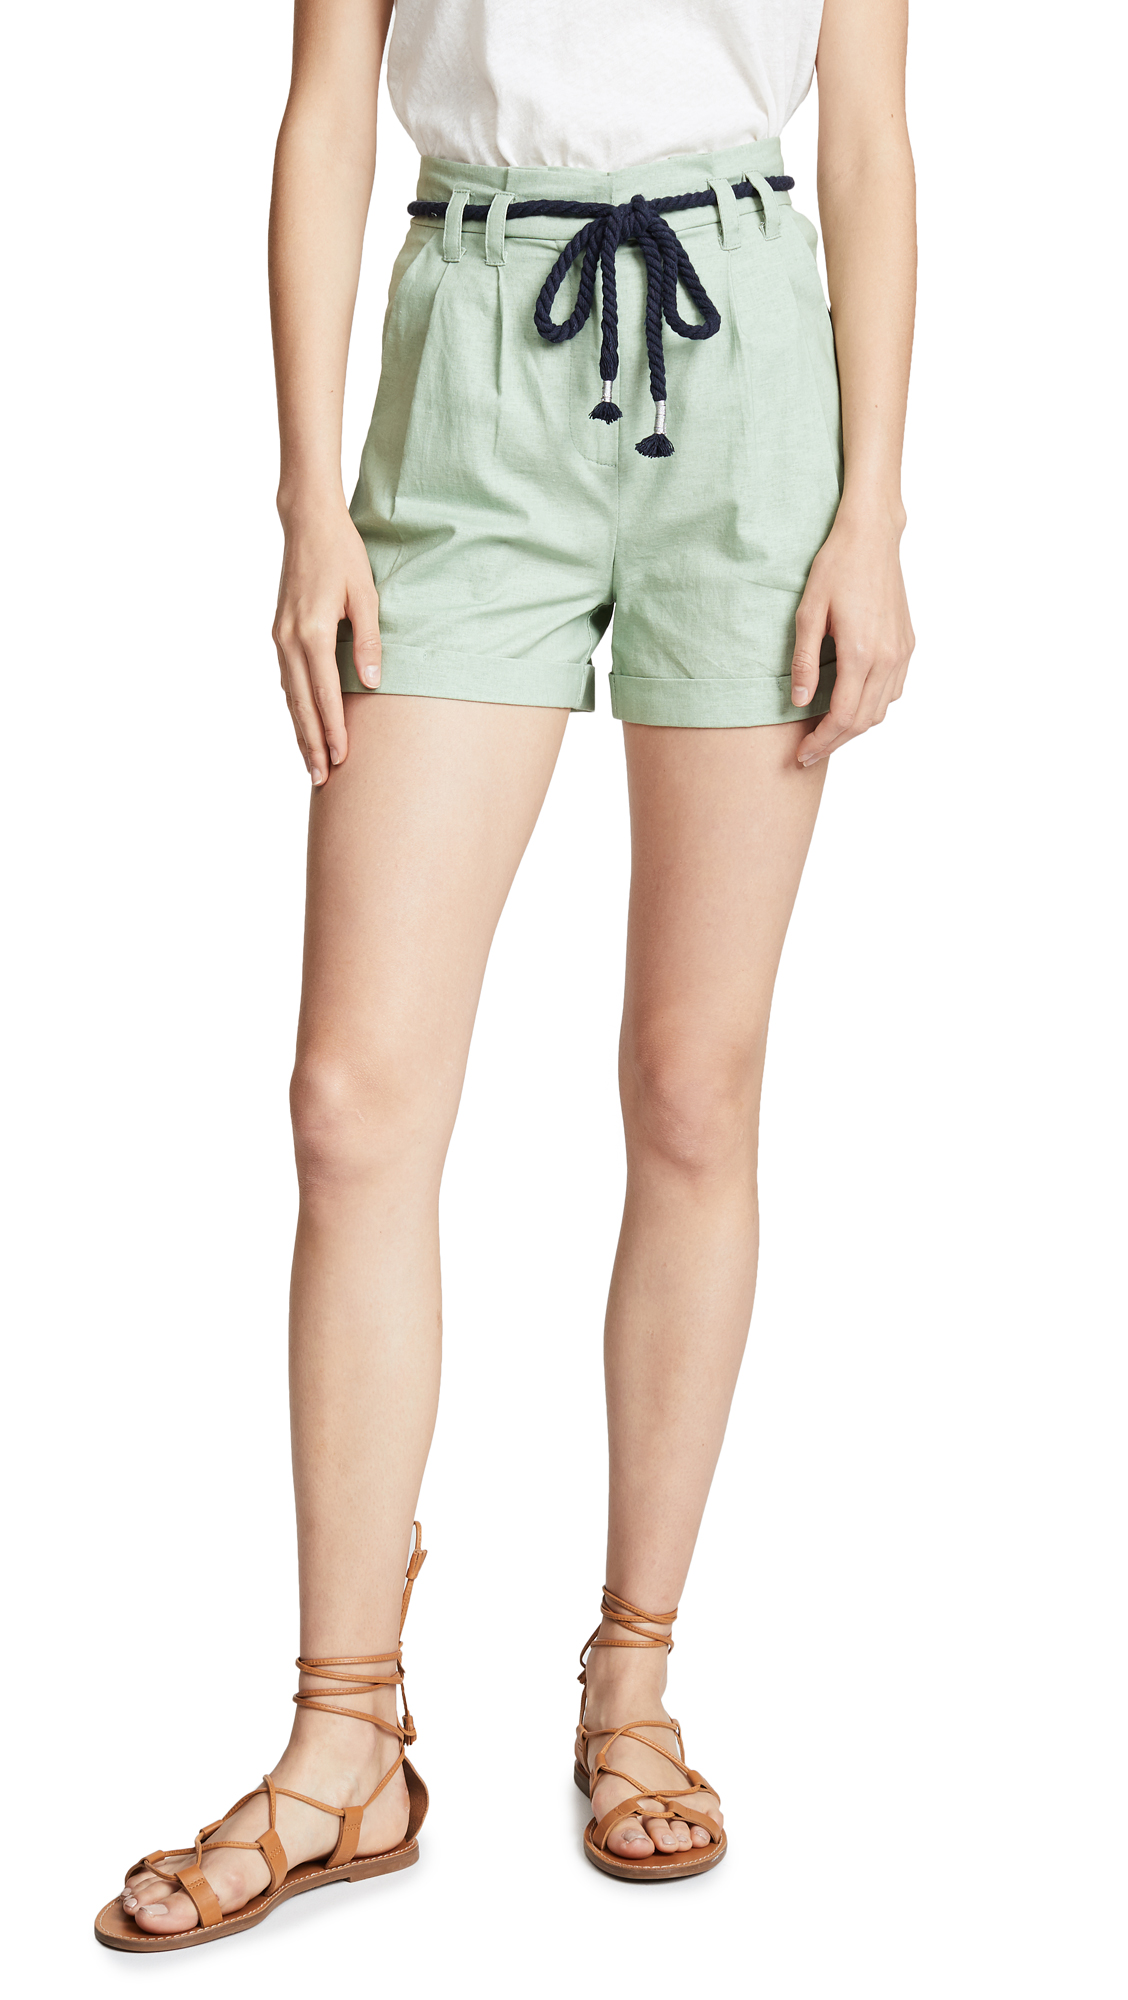 EVIDNT Trouser Shorts In Mint